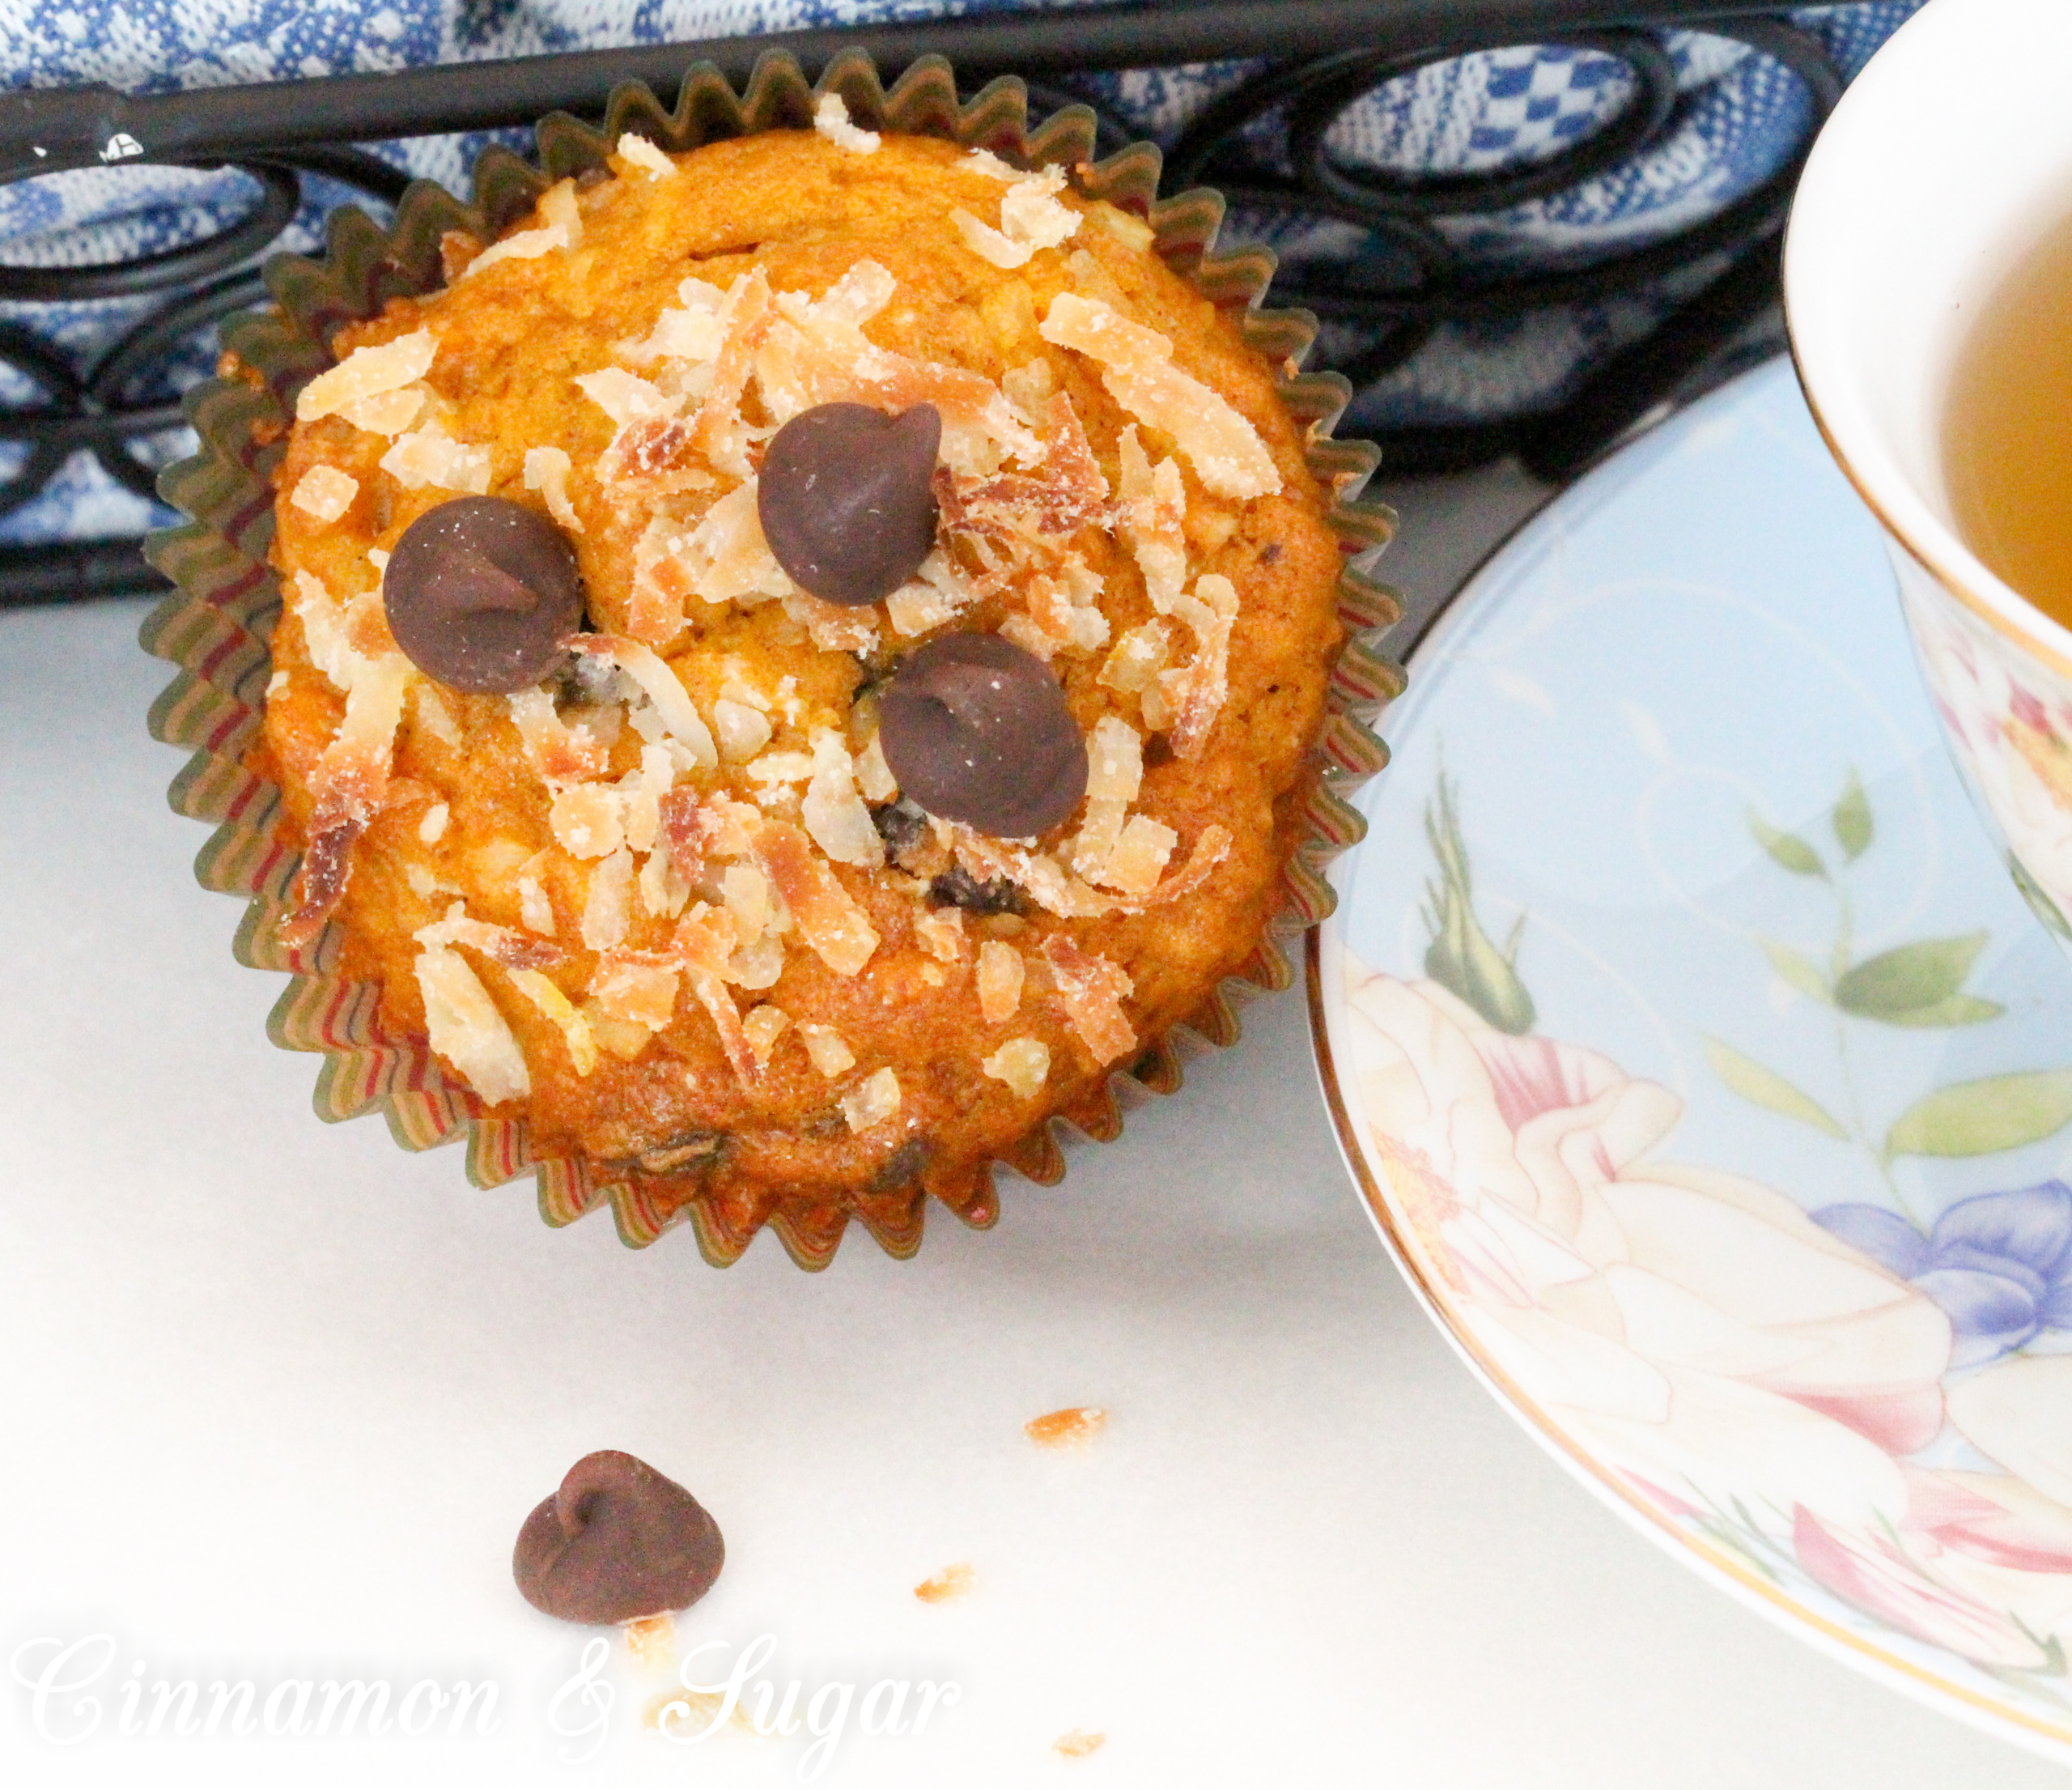 Pumpkin-Chocolate-Coconut Muffins uses pumpkin for moistness, chocolate for bittersweet sweetness and coconut for added sweet texture. Recipe shared with permission granted by Daryl Wood Gerber, author of SHREDDING THE EVIDENCE.